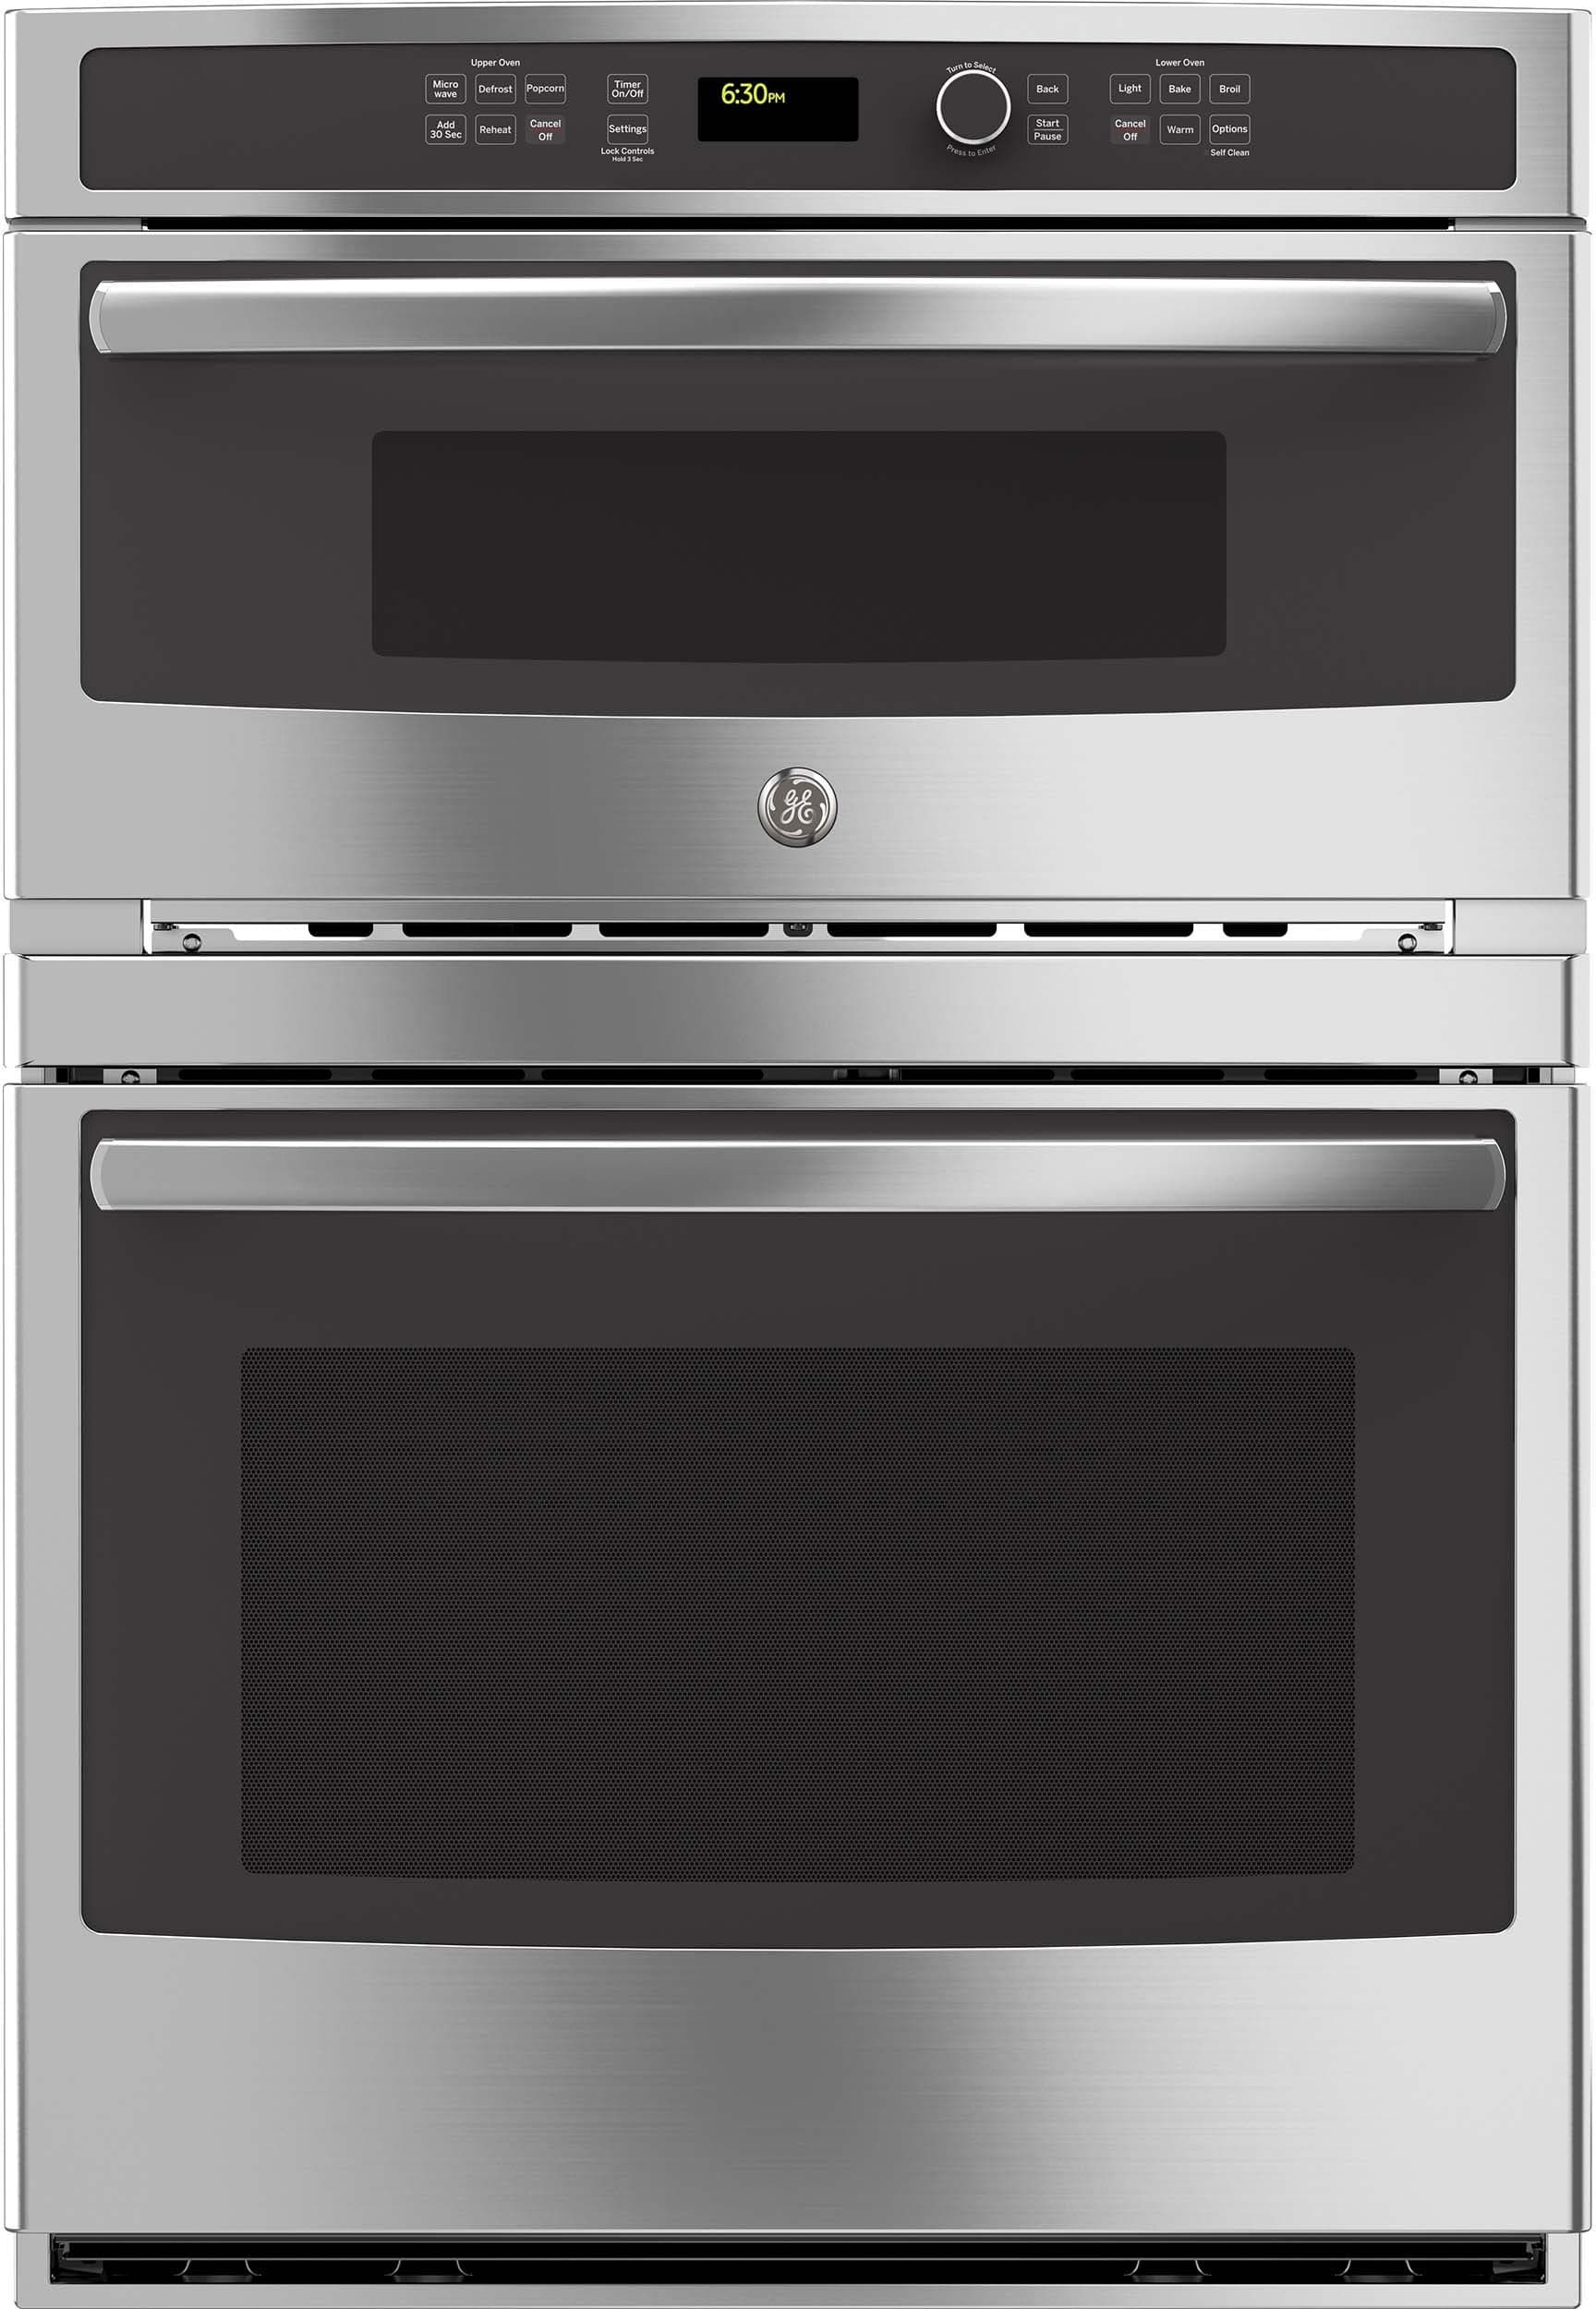 Ge Jt3800shss Combination Wall Oven Convection Wall Oven Wall Oven